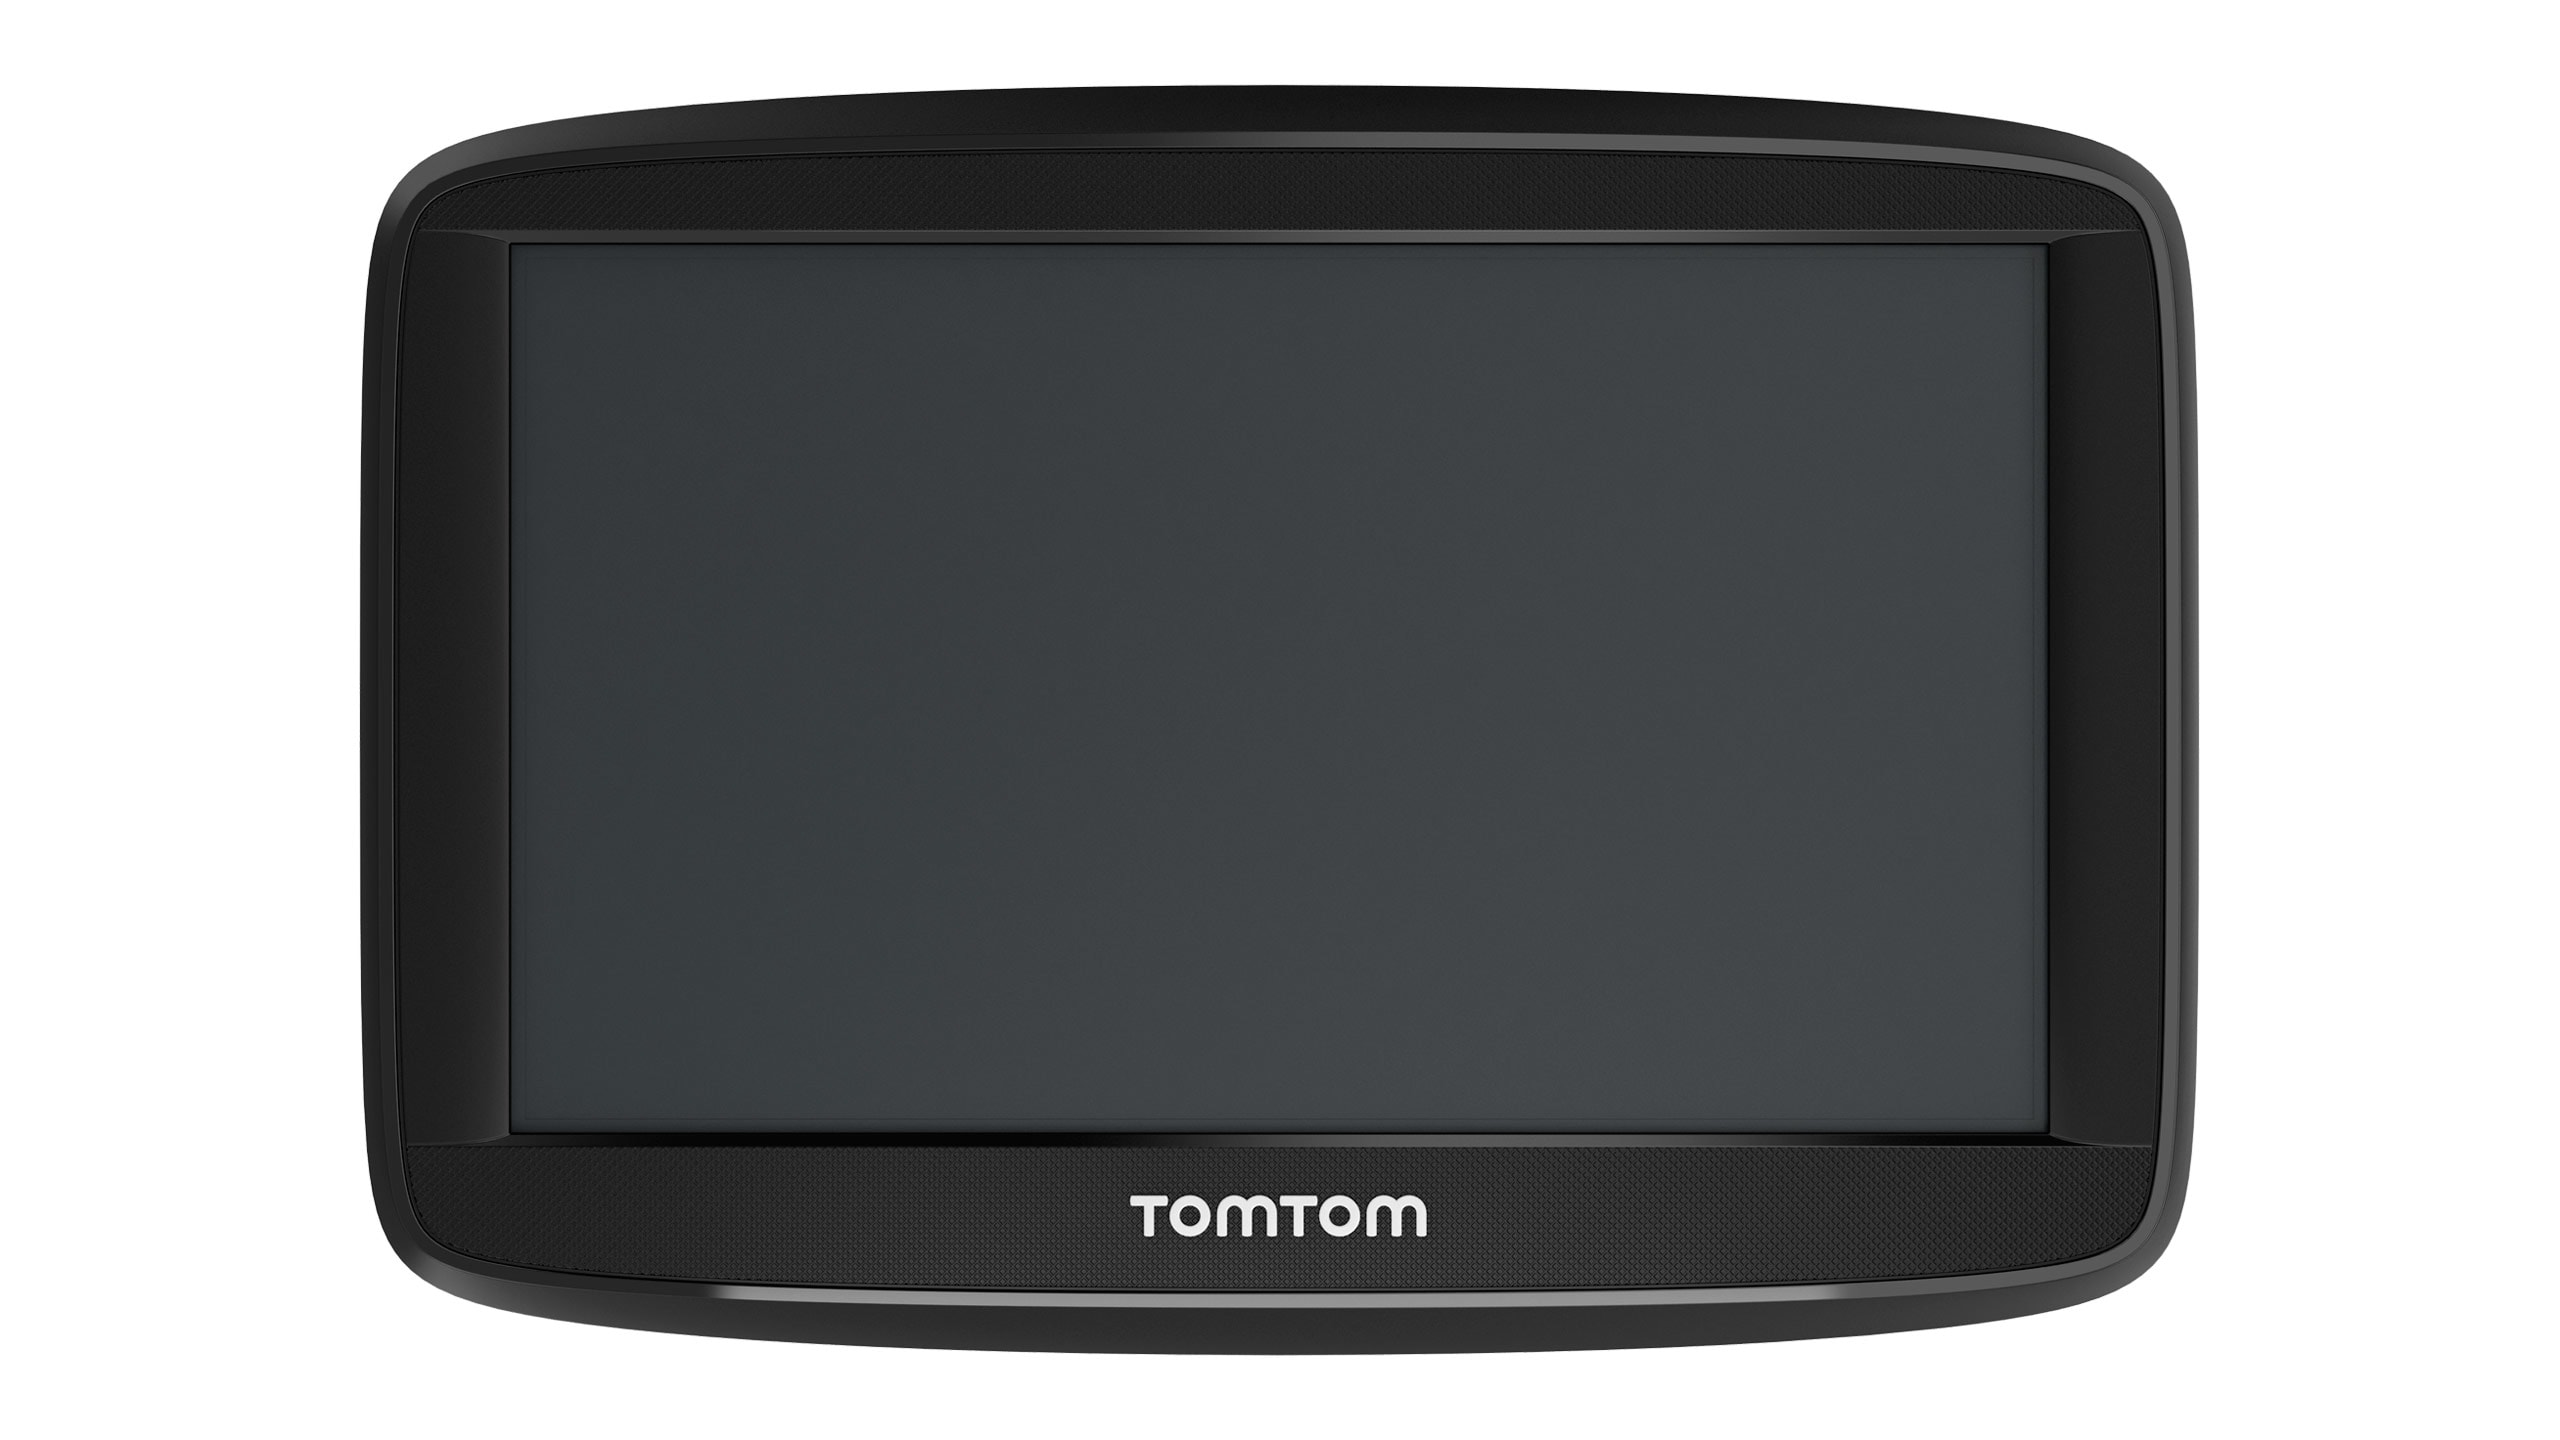 The TomTom VIA 1625M comes with Lifetime Maps to get you to your destination faster.